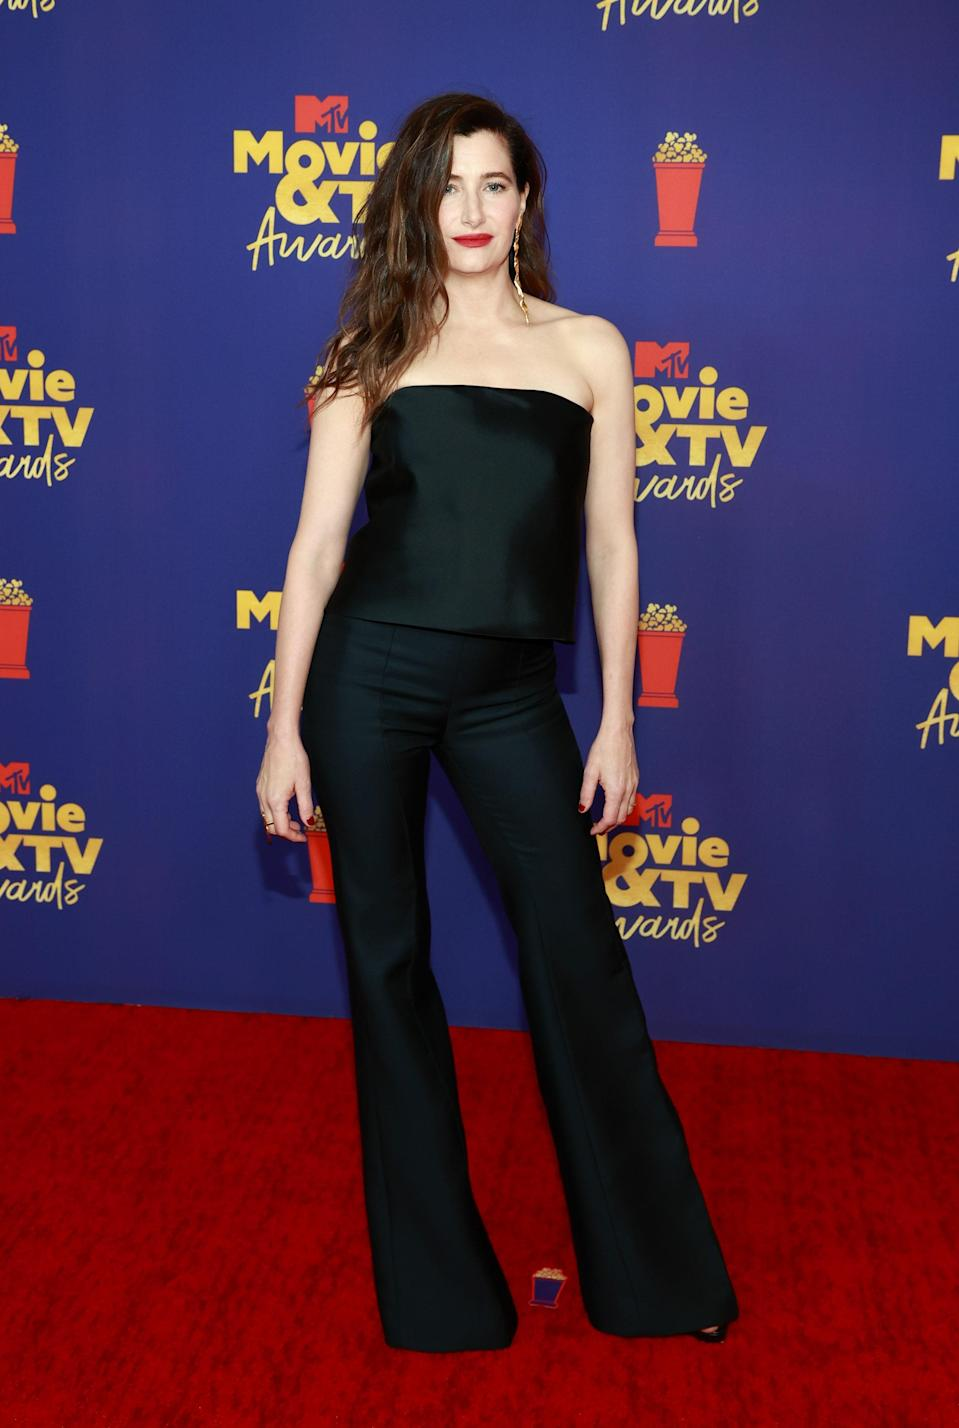 Nothing screams classy like a matching pant suit. <em>WandaVision</em> actor Kathryn Hahn kept it simple in a satin tube top and flared pants with a bold red lip and gold earrings to accessorize.